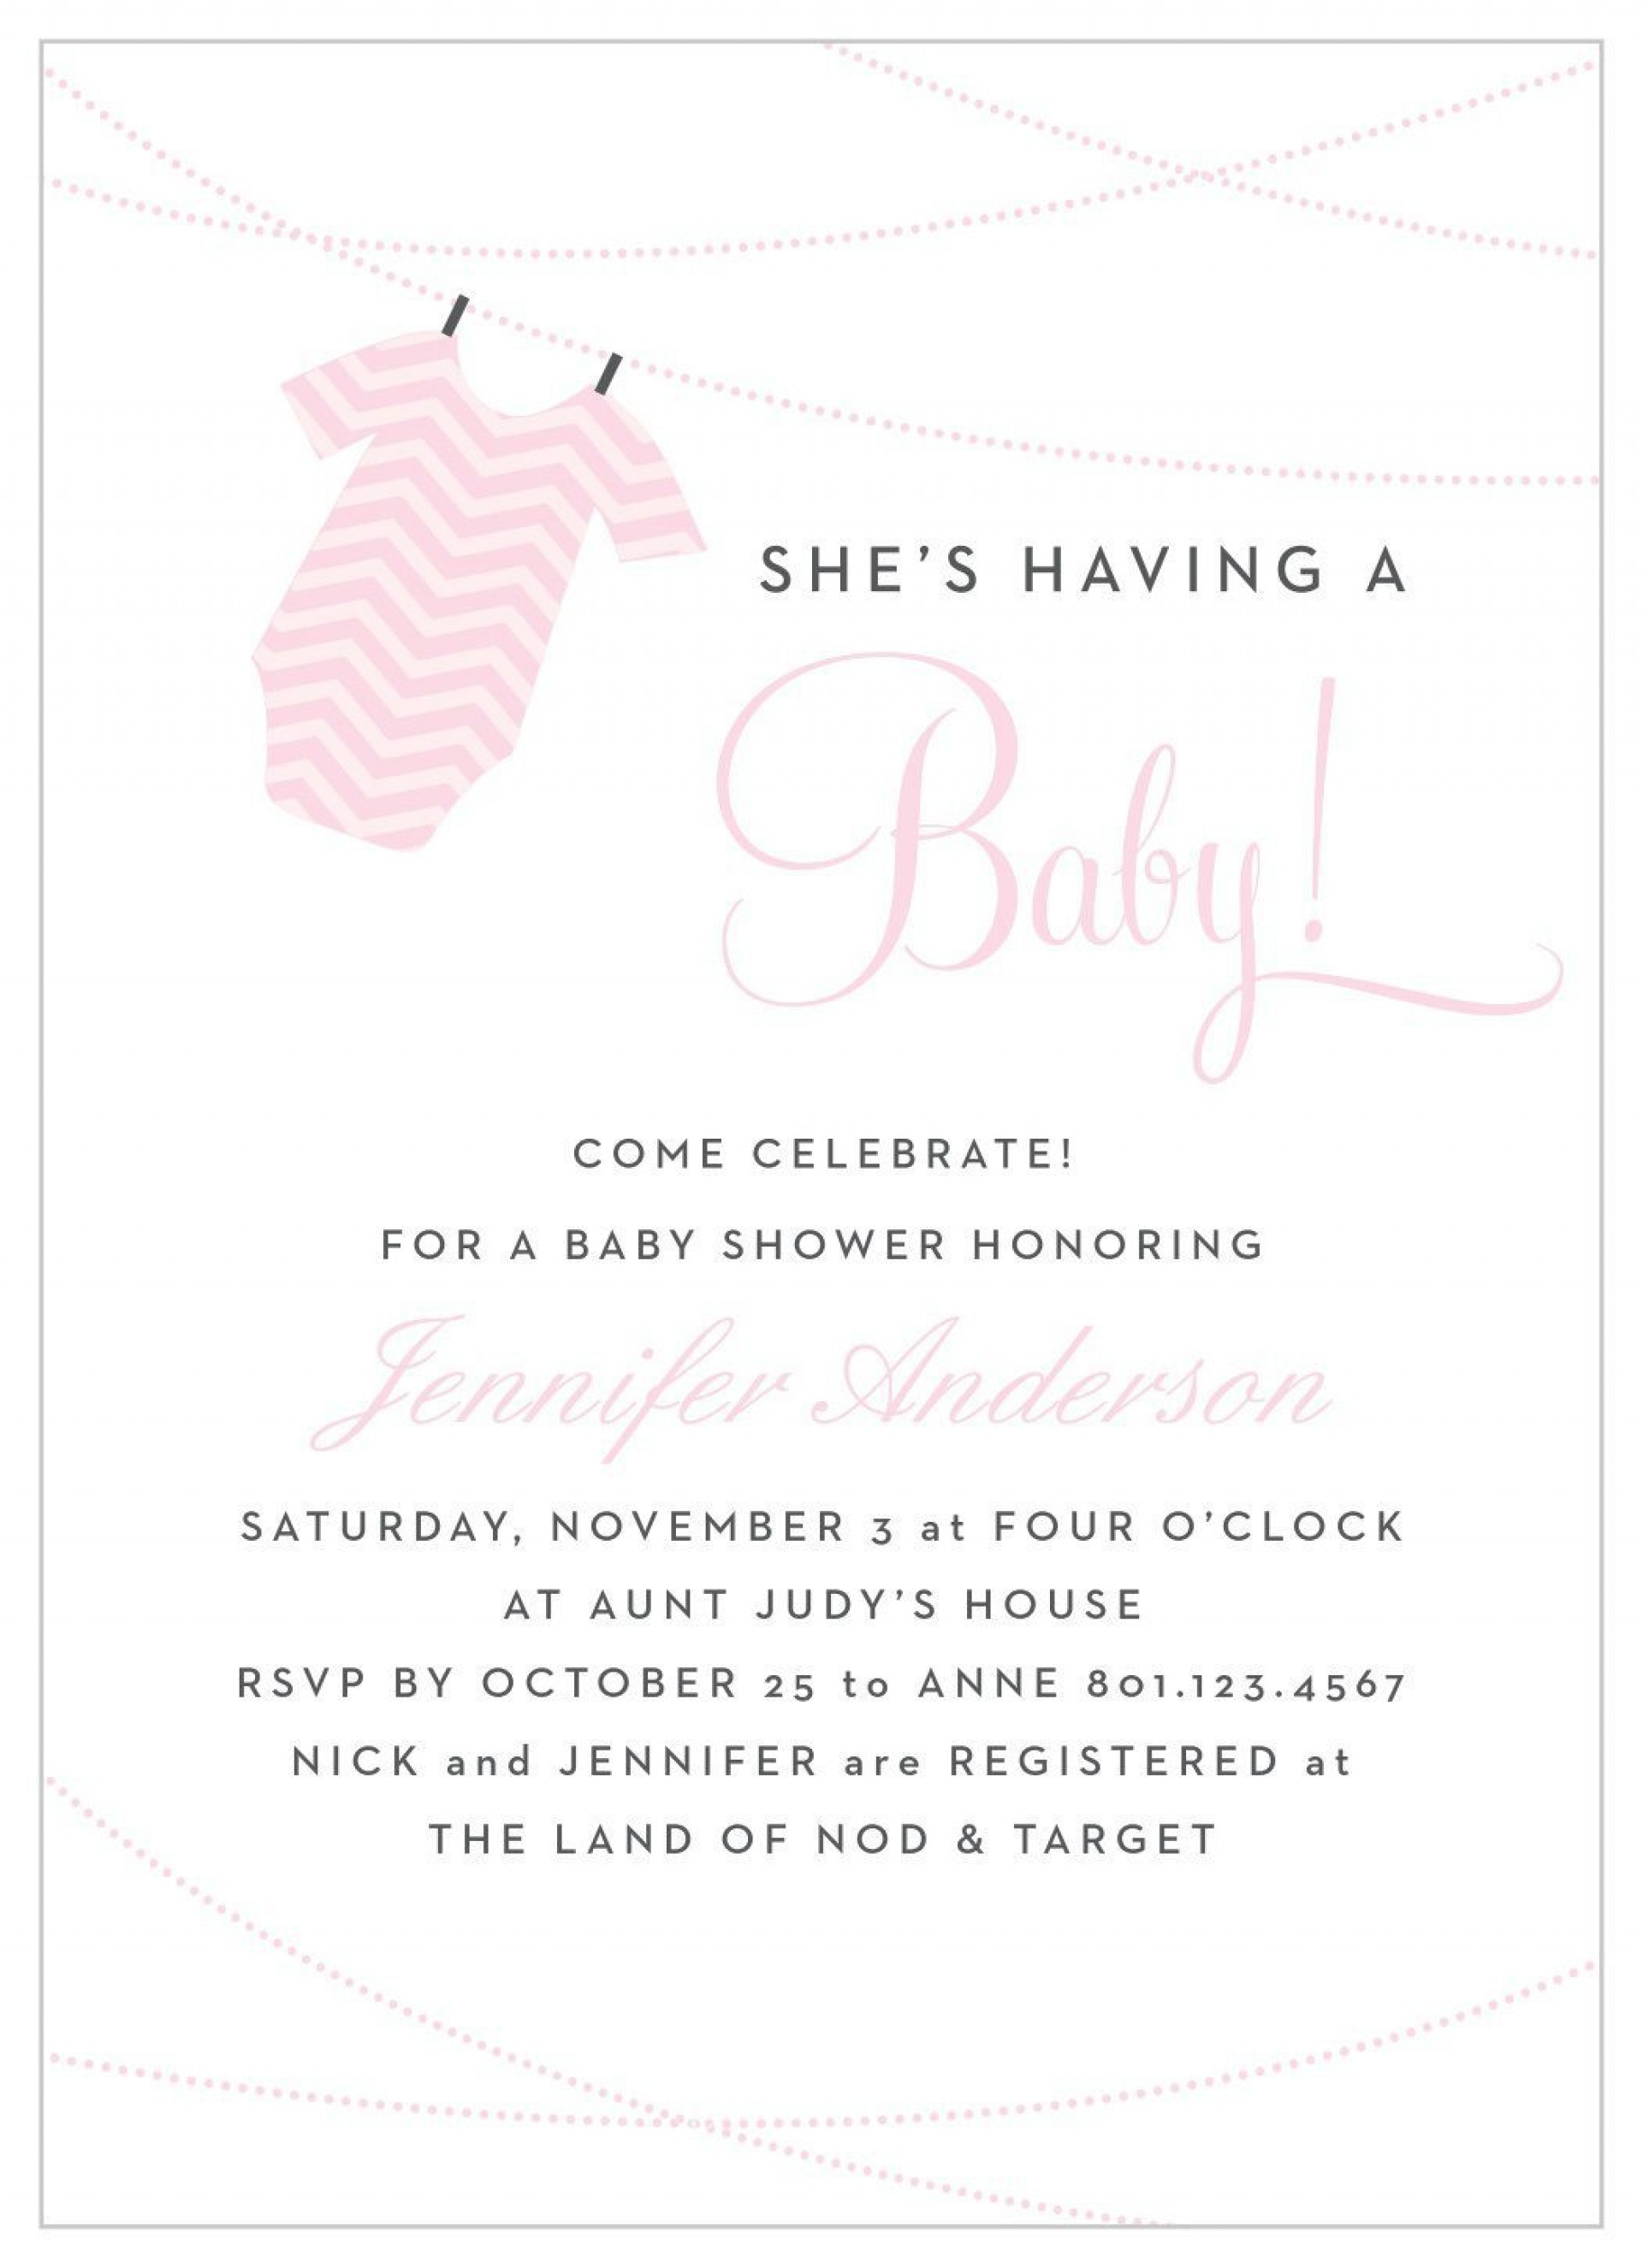 008 Striking Baby Shower Invitation Wording Example Highest Clarity  Examples Invite Coed Idea For Boy1920